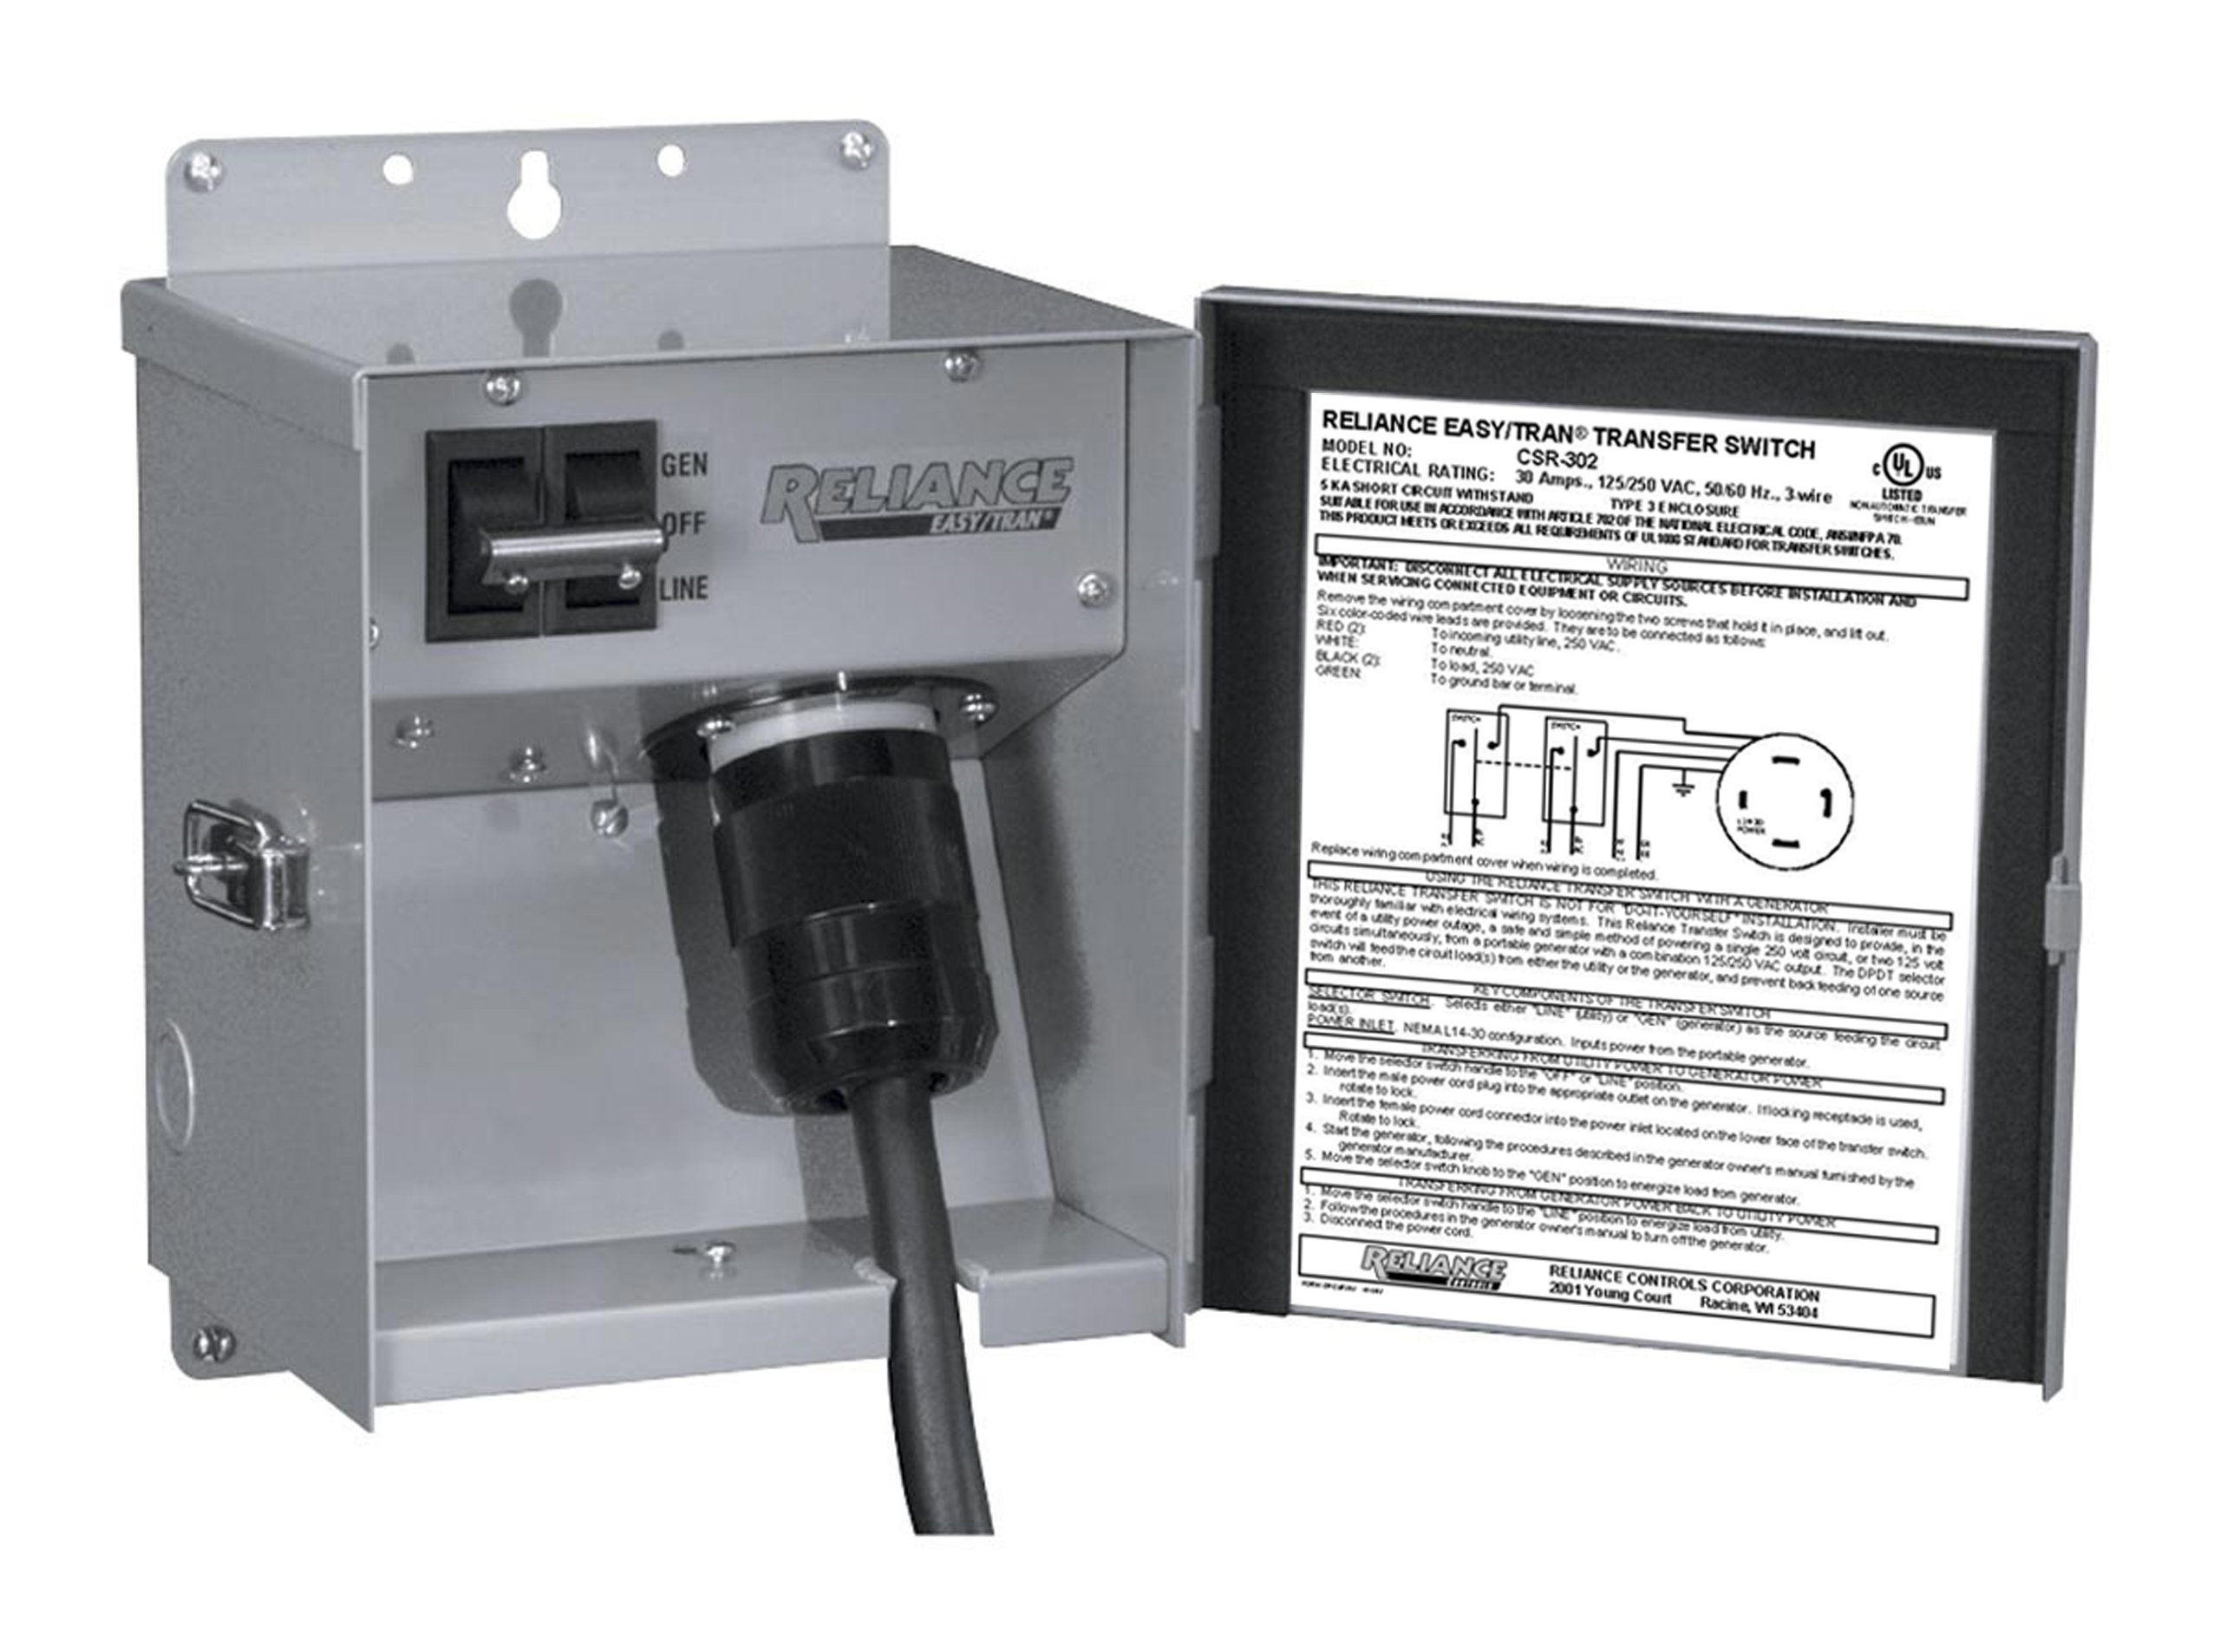 Reliance Controls Corporation CSR202 Easy/Tran Transfer Switch for Generators Up to 5,000 Watts by Reliance Controls